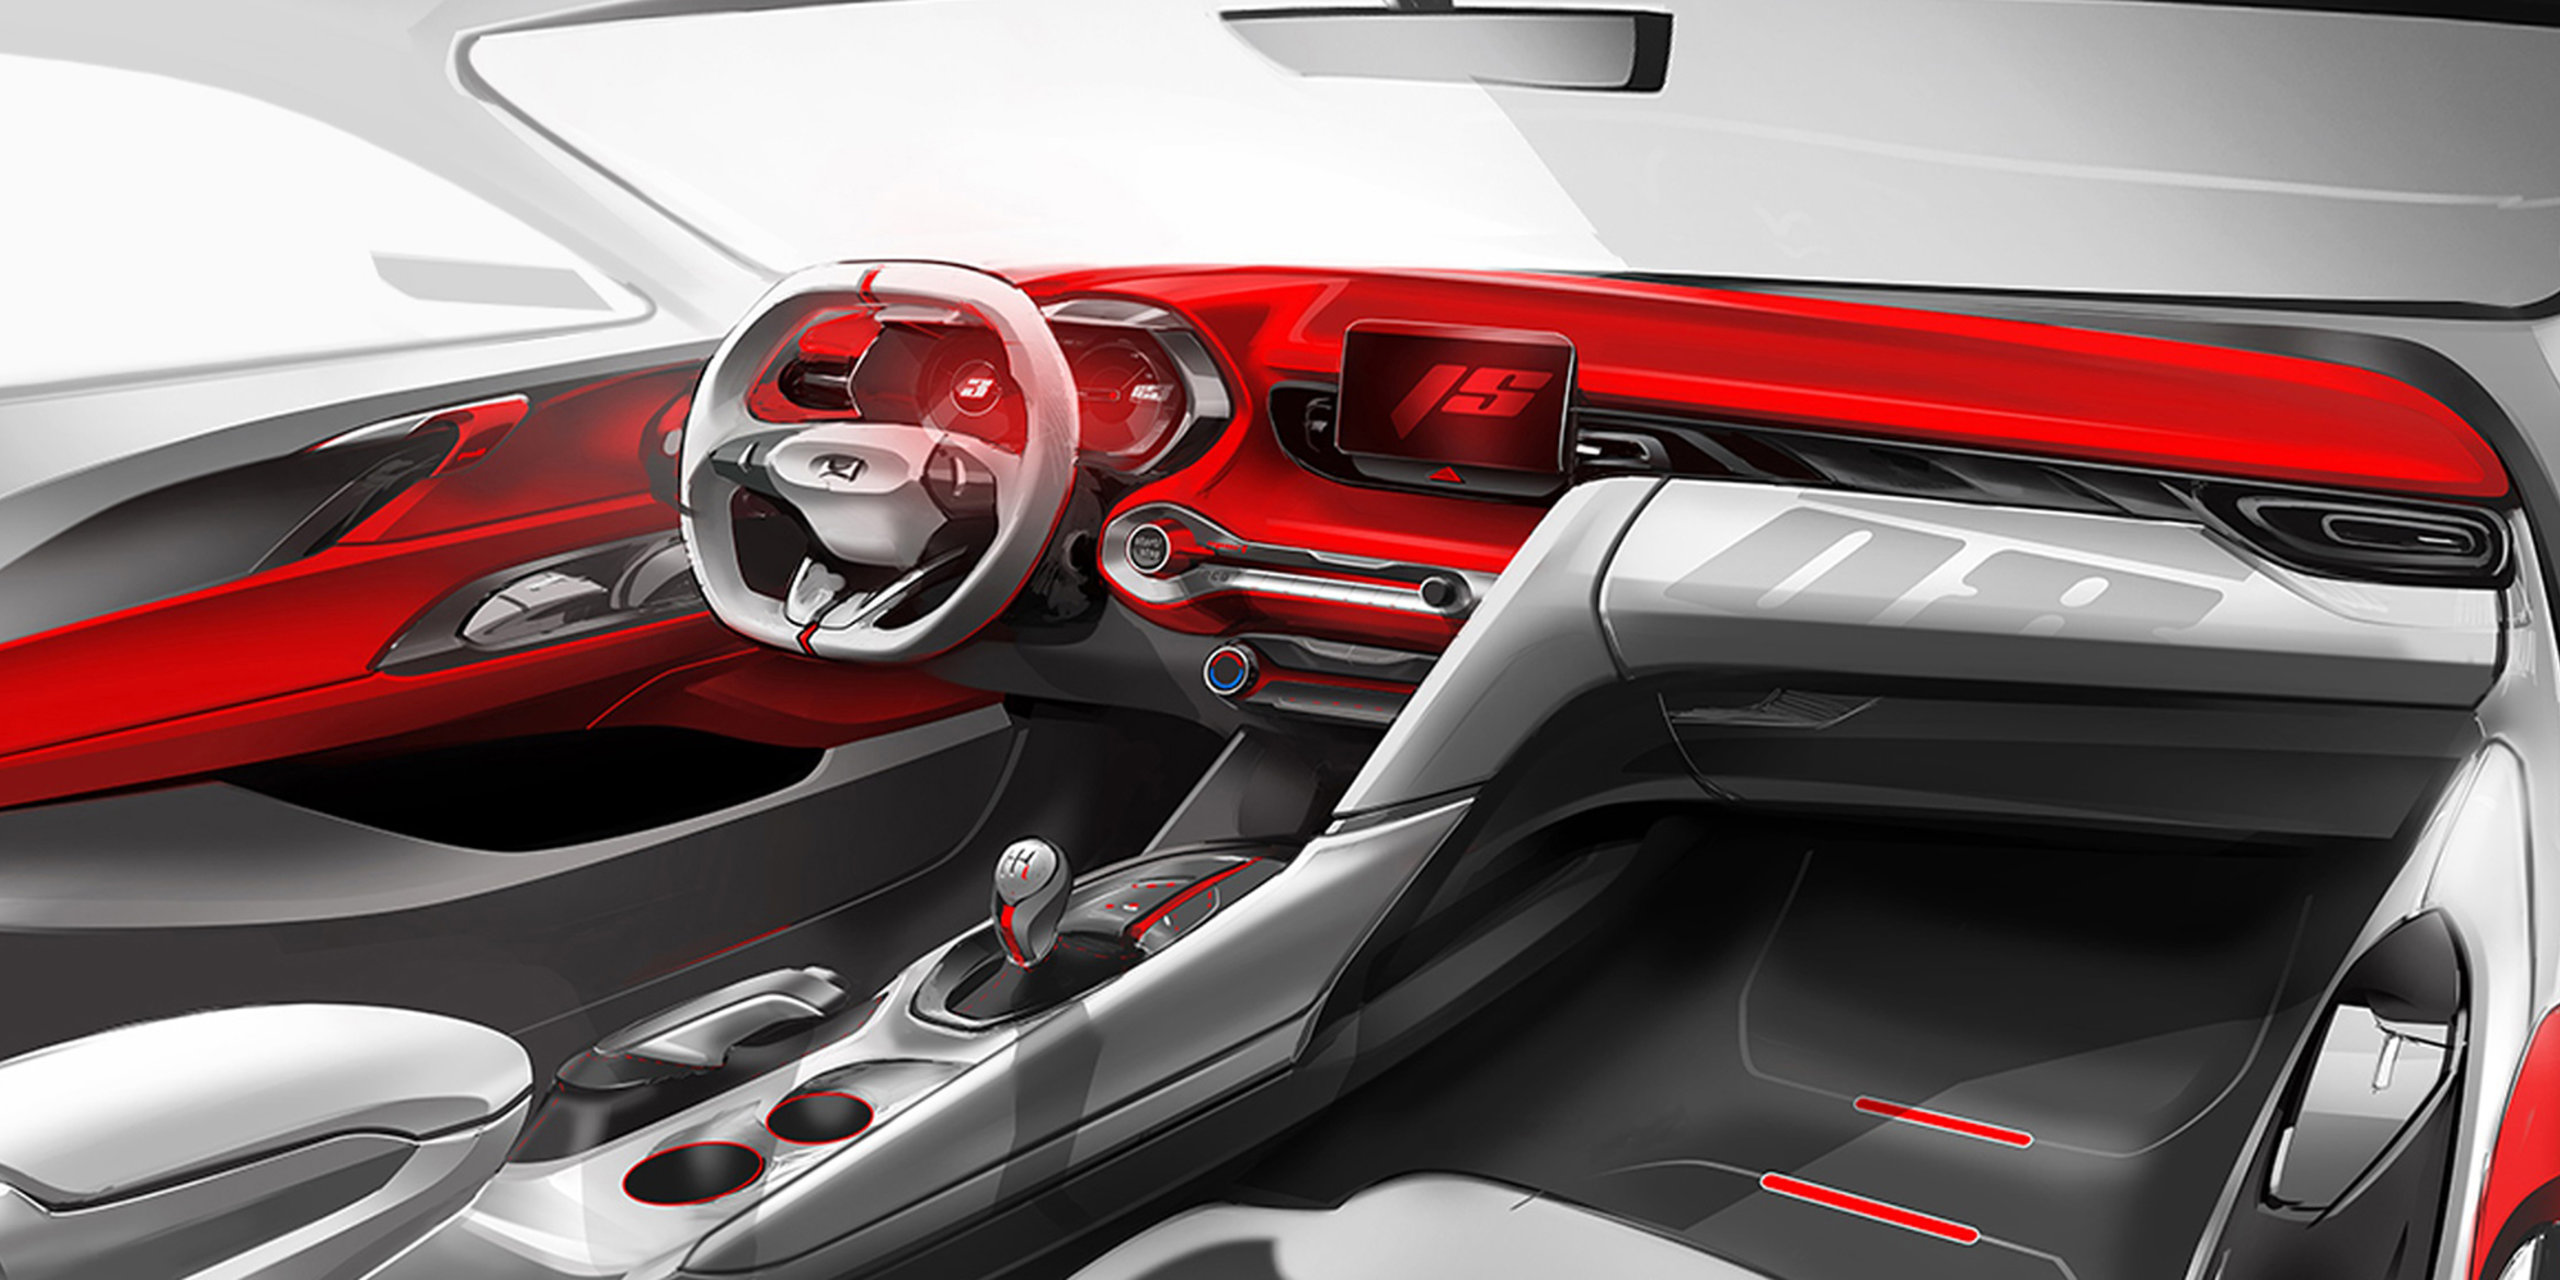 2019 hyundai veloster interior teased bristles with sportiness autoevolution. Black Bedroom Furniture Sets. Home Design Ideas